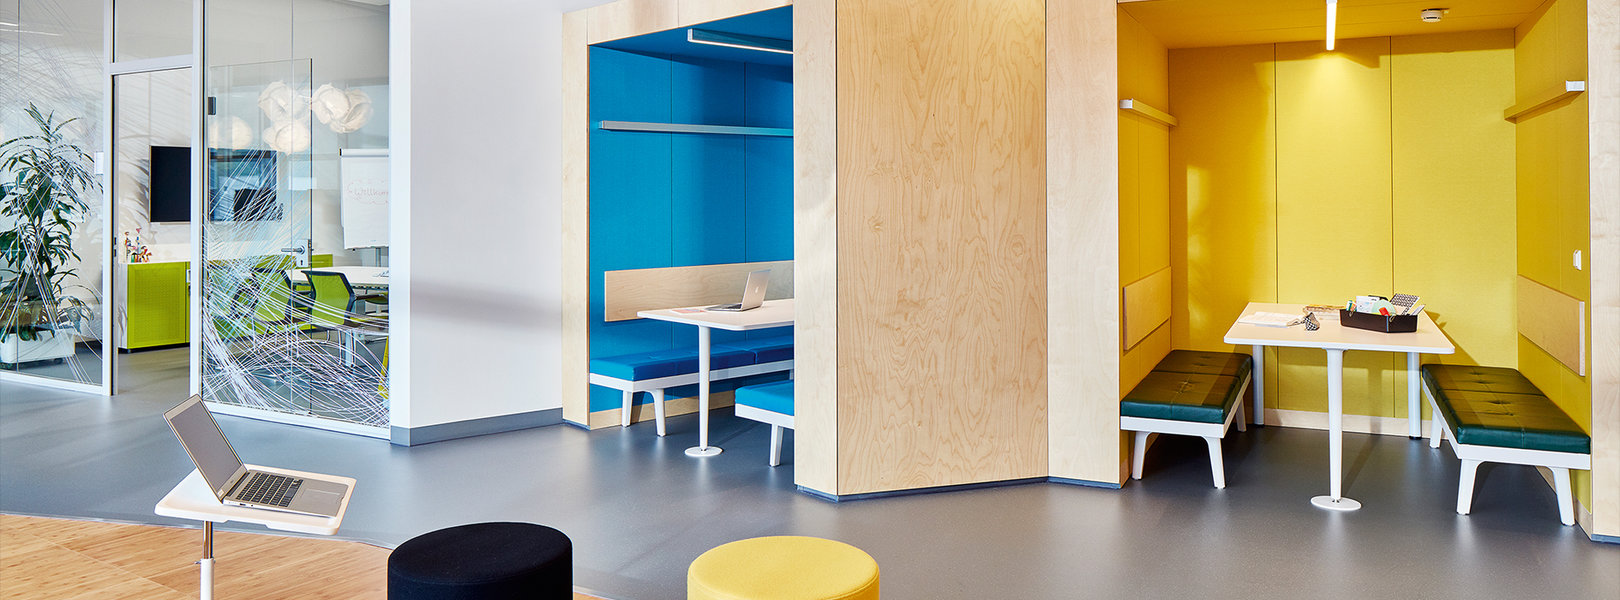 workspirit by architare